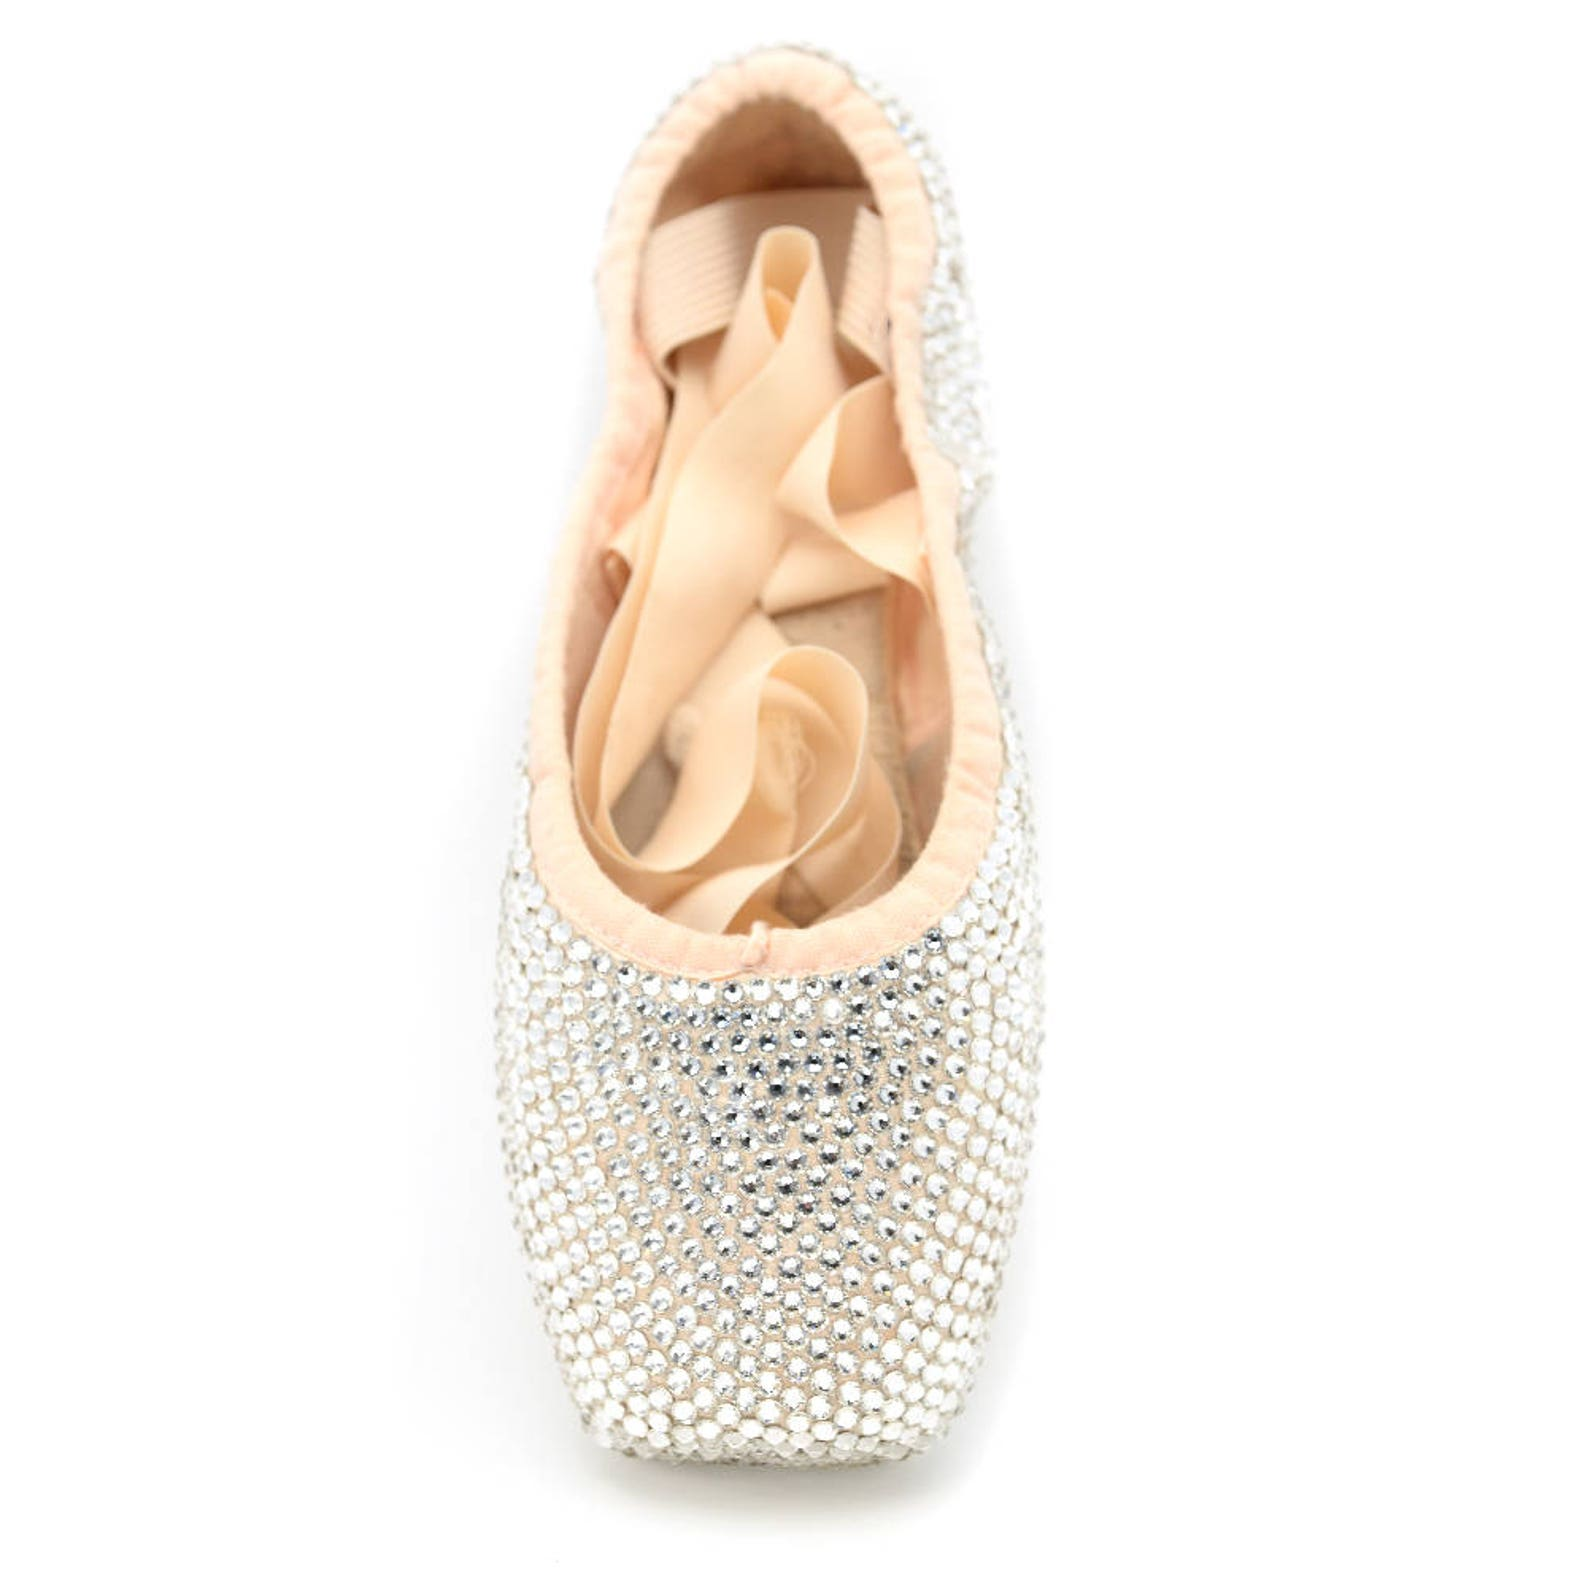 crystal pointe shoes | decorated ballet shoes | ballerina gift | swarovski crystal shoes | custom crystal color | gift for dance